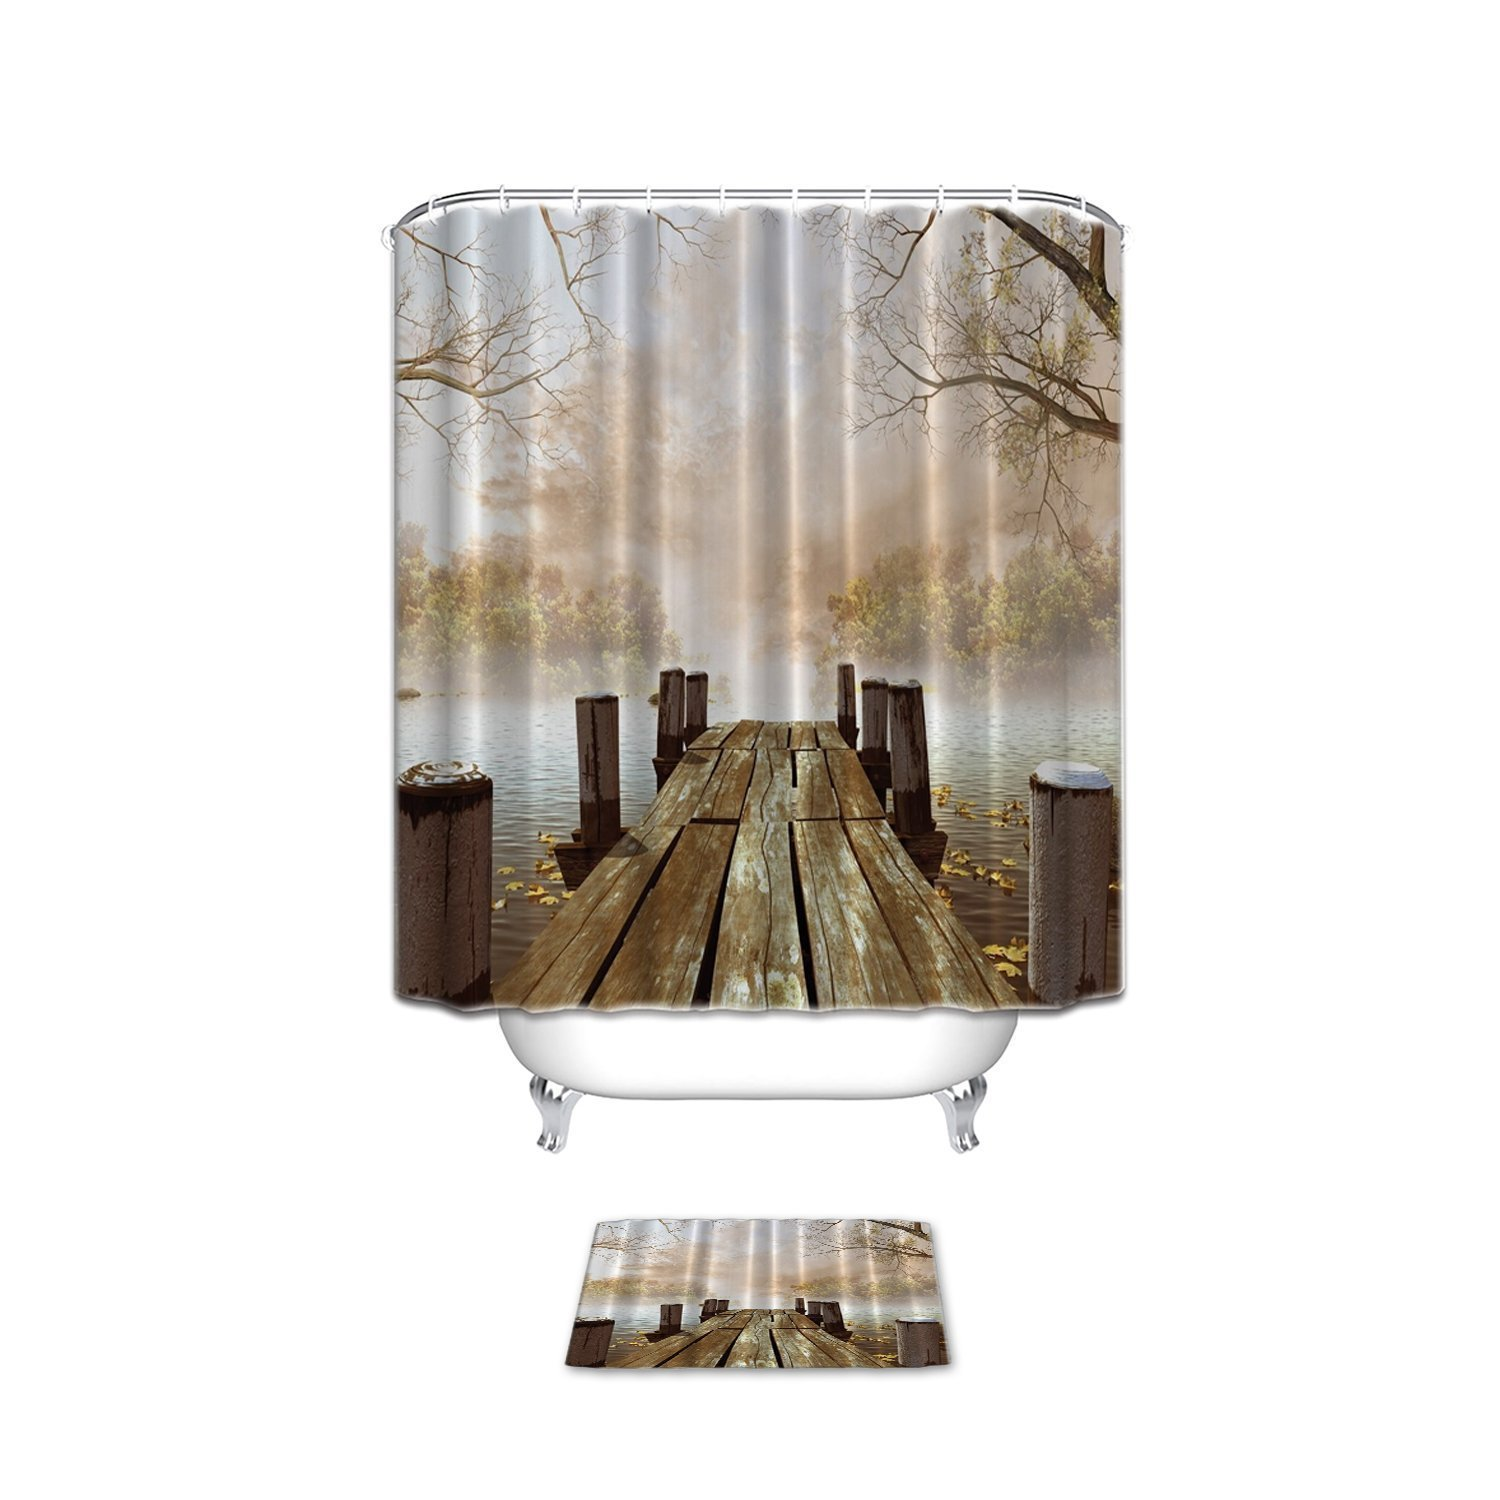 Vandarllin Fall Wooden Bridge Shower Curtain Set with Bathroom Mat Rugs Collection, Foggy Lake Rustic Country Home Art Paintings,Tan Brown